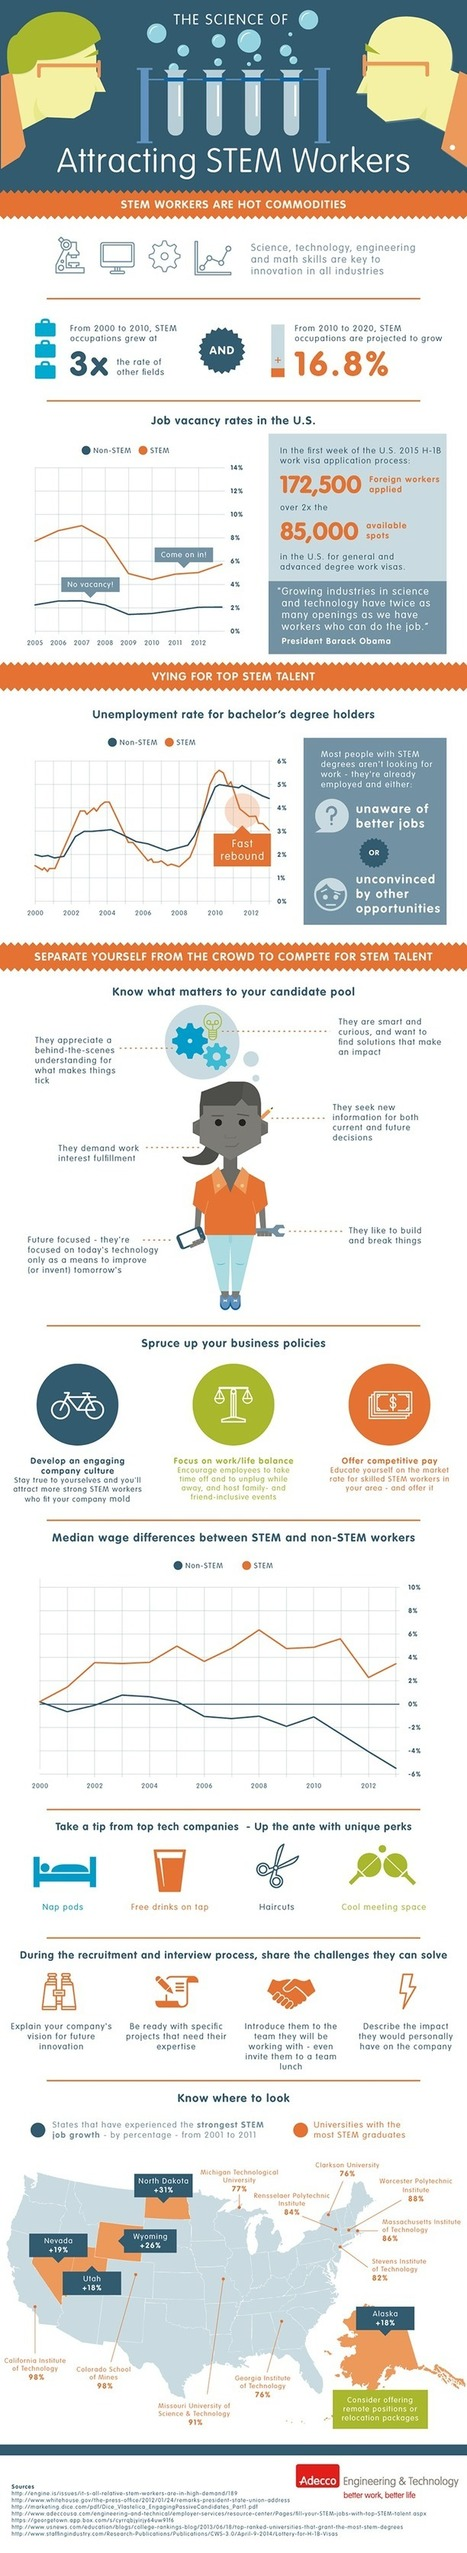 Attracting STEM Talent For Your Business [Infographic] - Business 2 Community | Michael S Robinson: Infographic and | Scoop.it